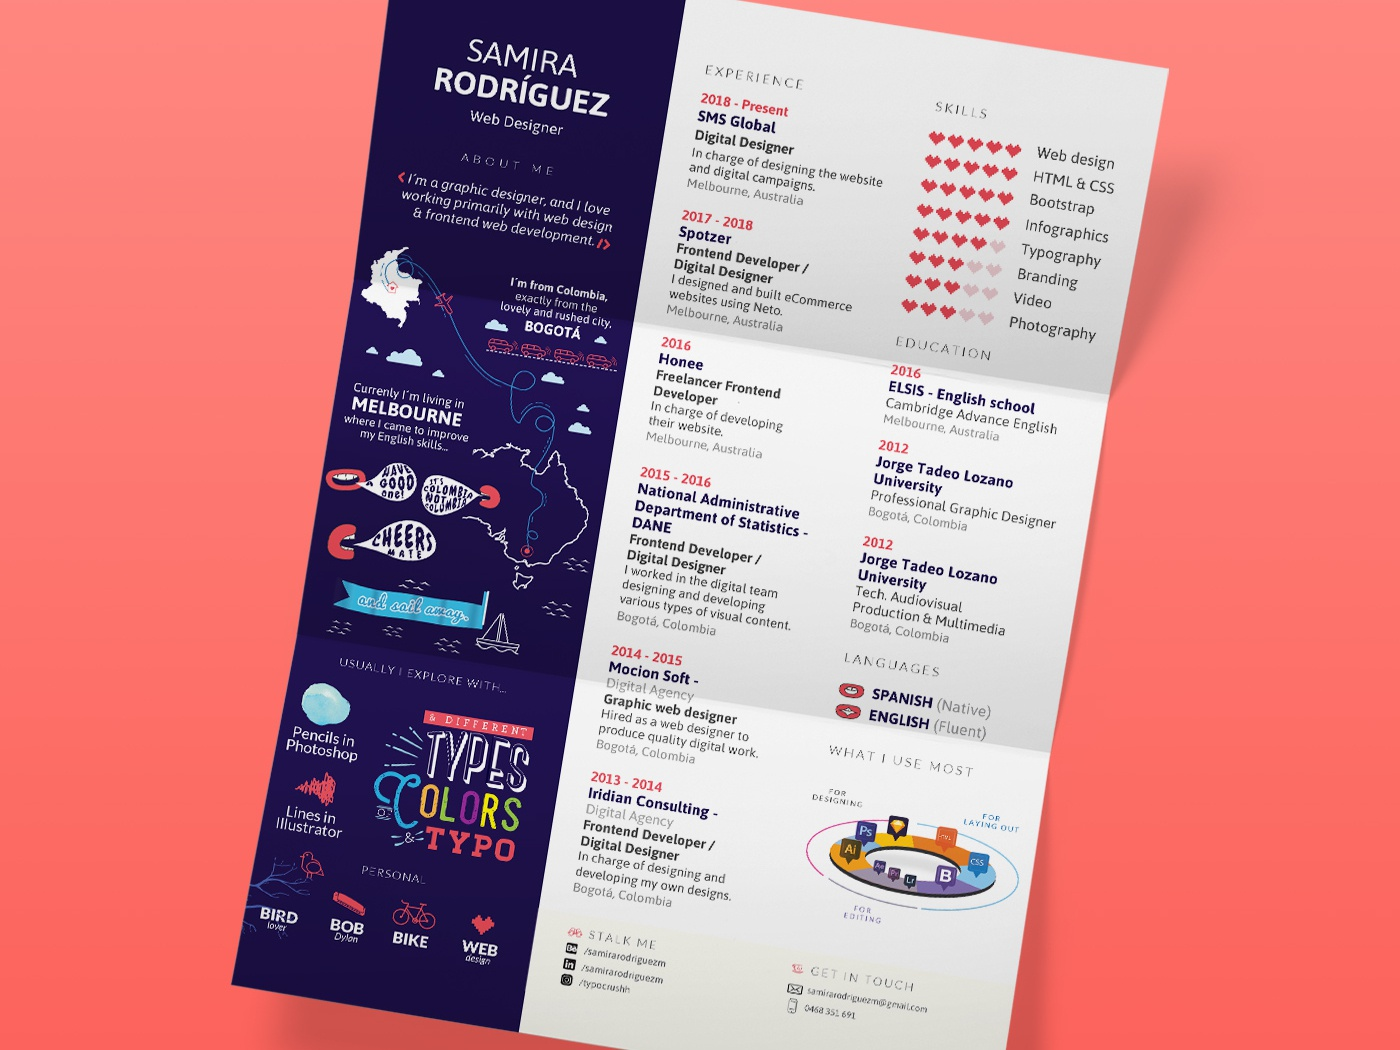 CV 2018 infographic resume typography flat vector design illustration icon infographic design infograhic cv